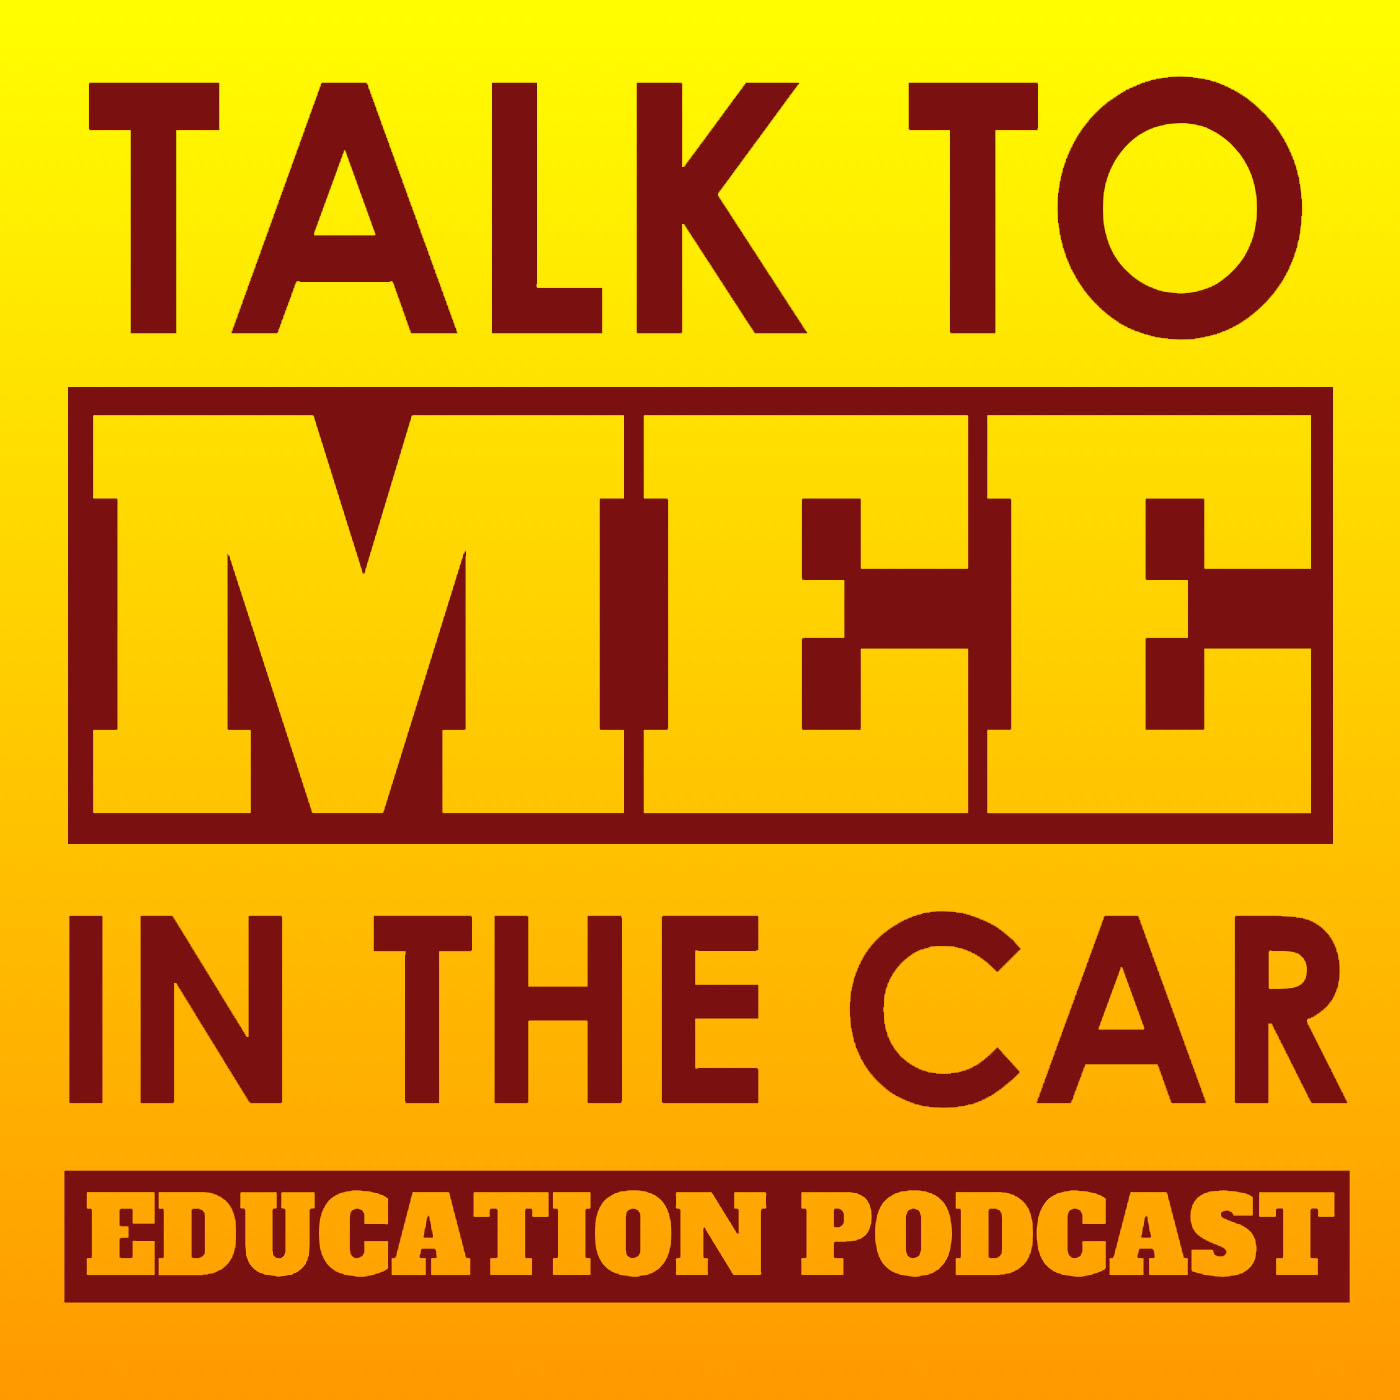 Car Talk Podcast >> Talk To Mee In The Car Education Podcast On Apple Podcasts